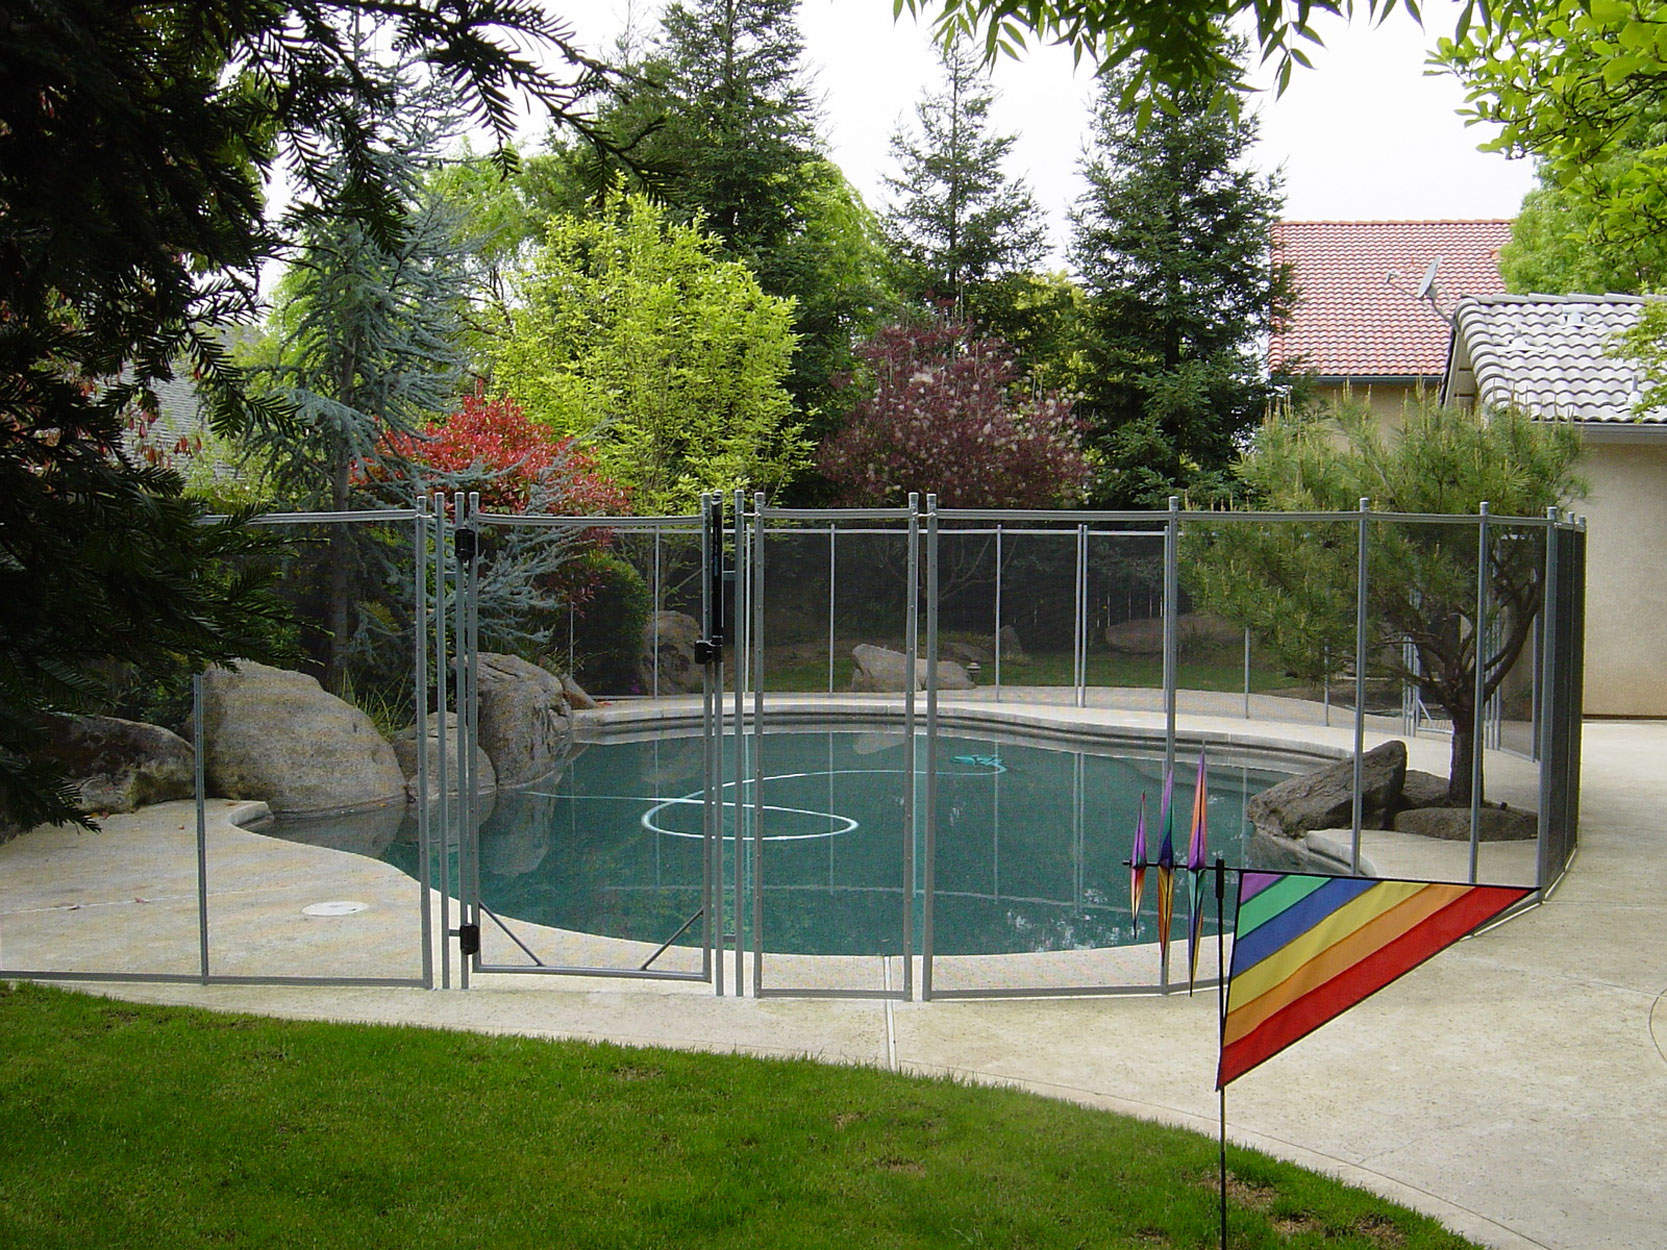 Picture of: Pool Fence Ideas for Dogs